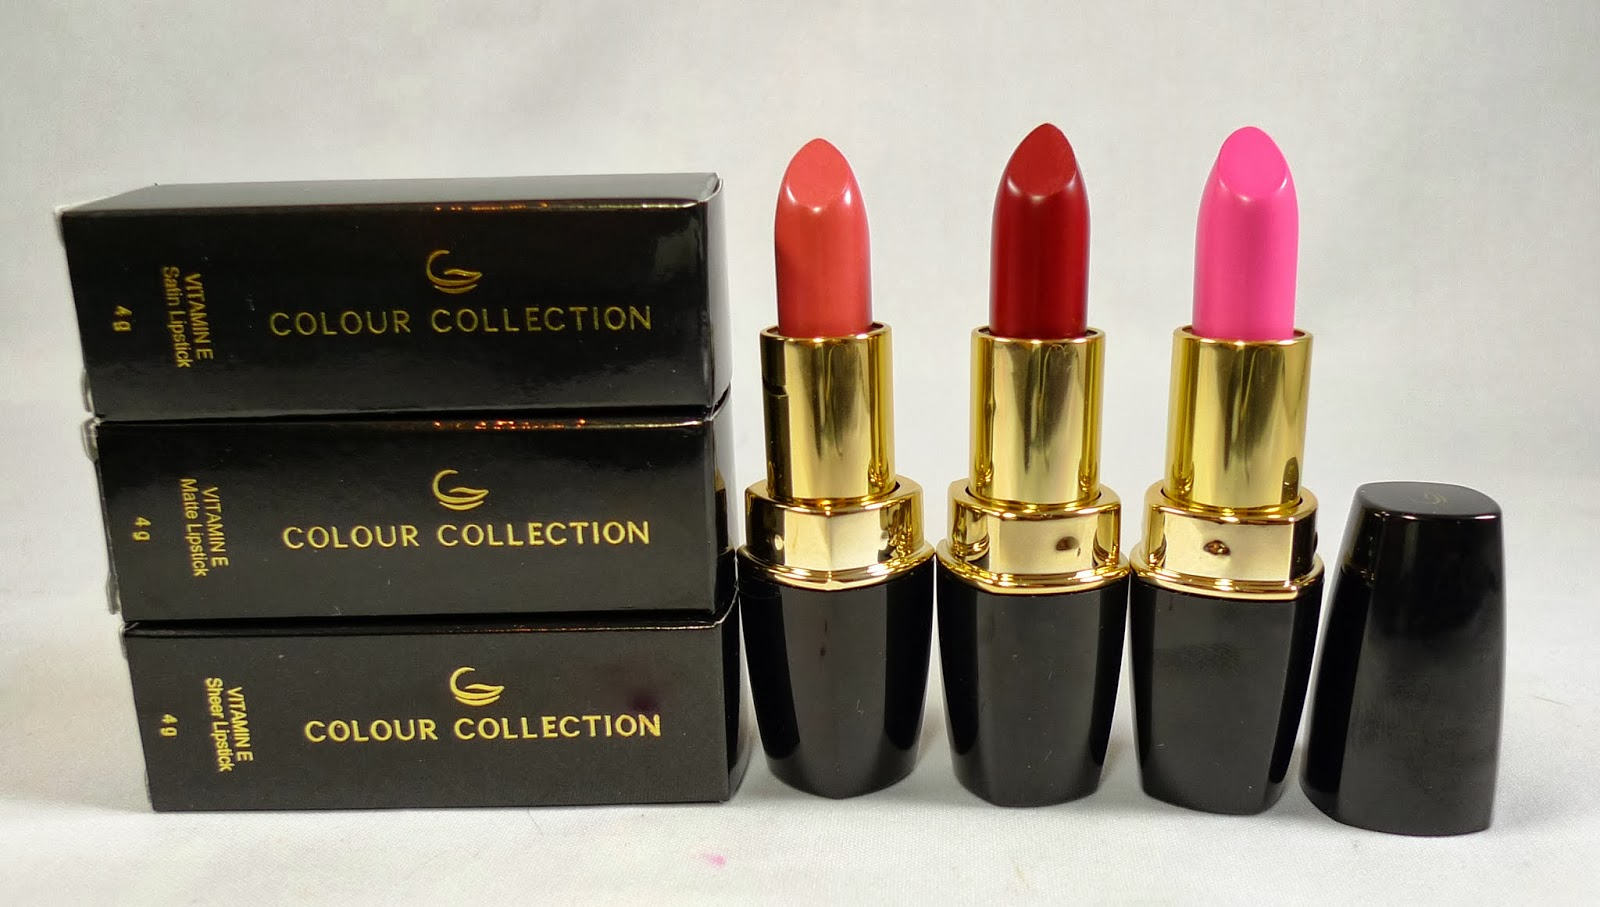 Colour Collection Lipsticks Review The Beauty Junkee Tupperware Classy Red Other Locations Please Inquire Via Brands On Facebook